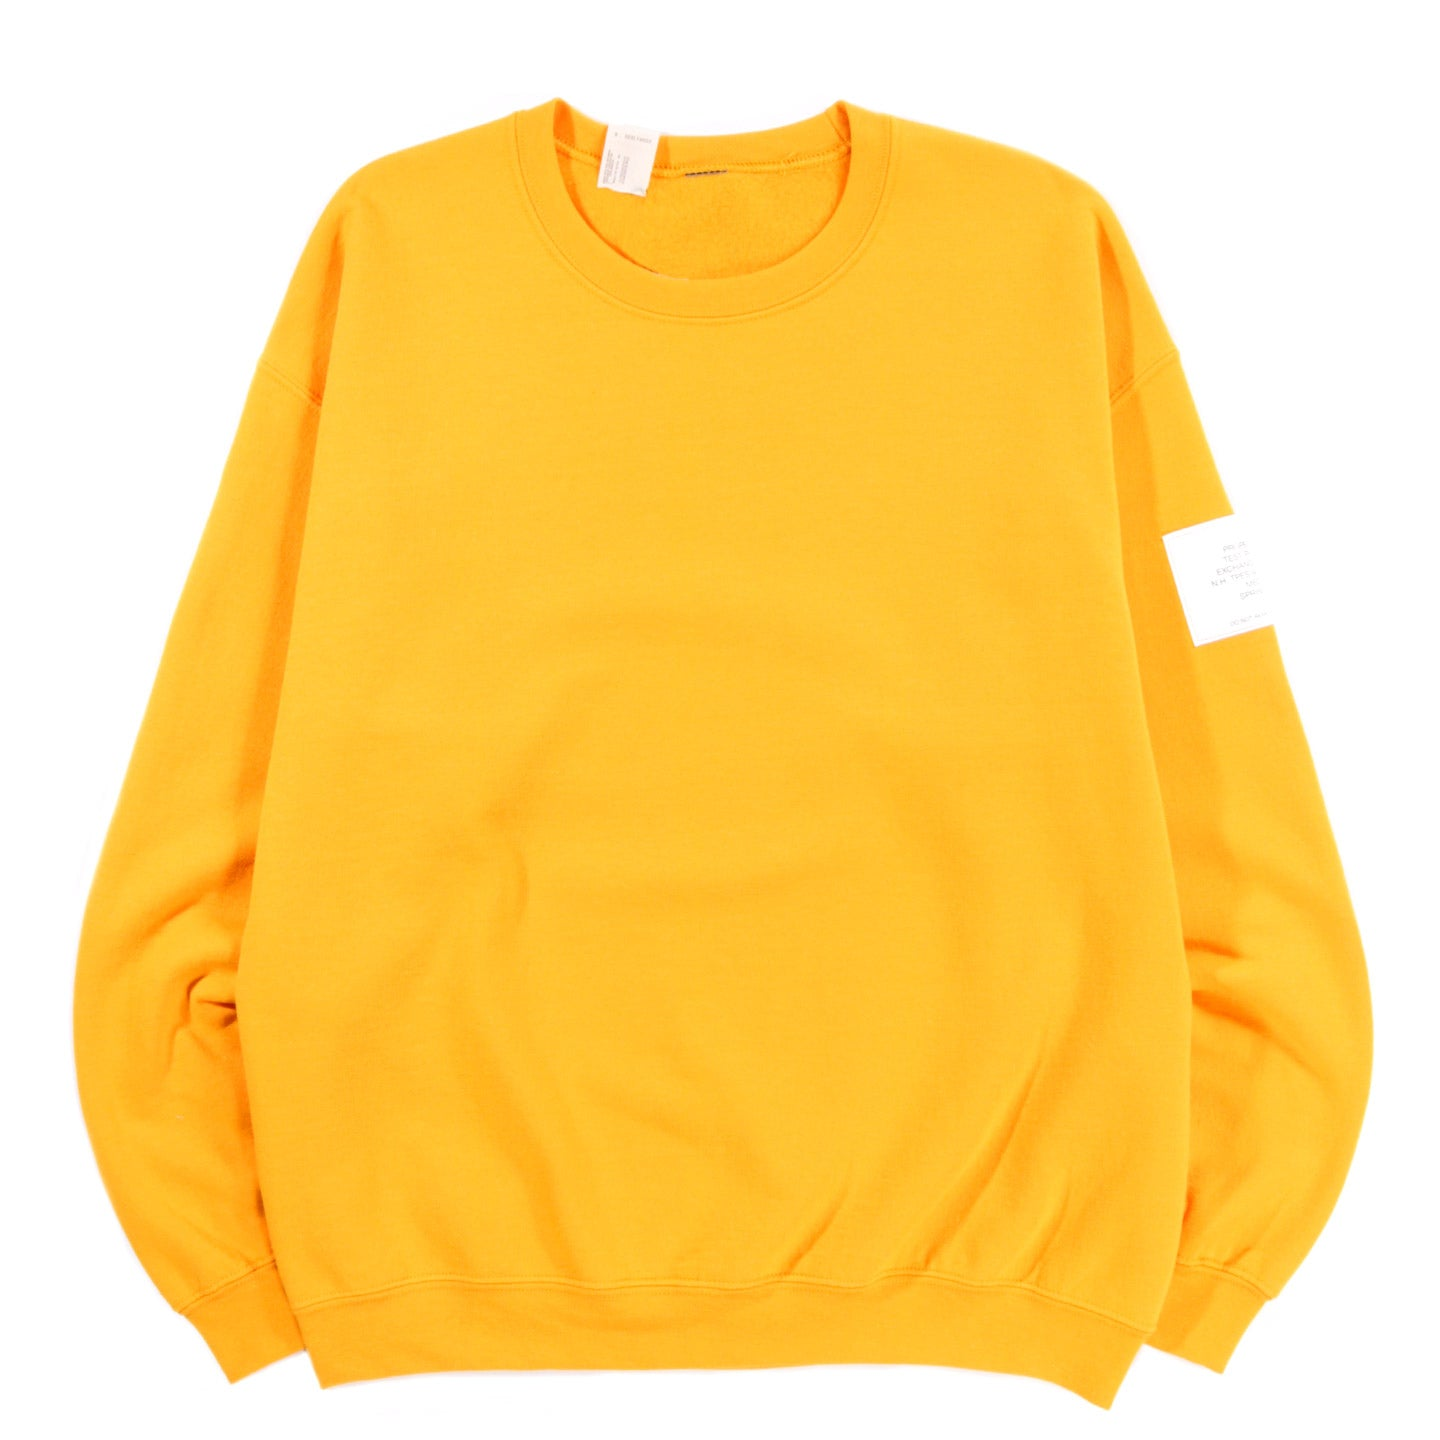 N.HOOLYWOOD 191-SE02 SANDALS BLACK